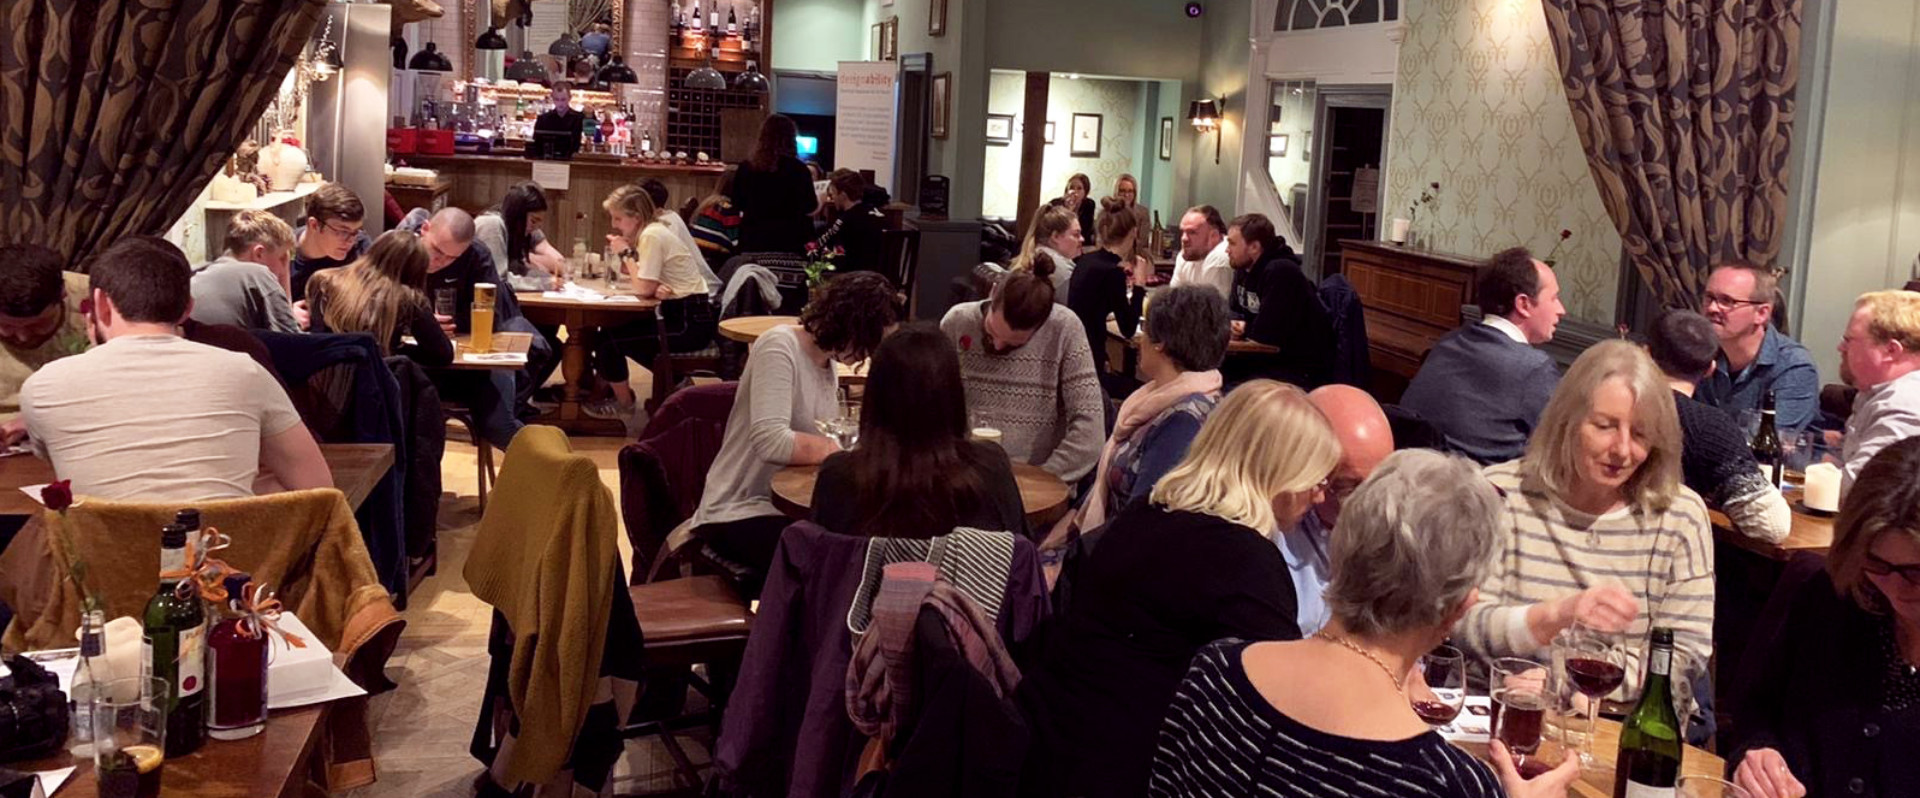 Groups of people around tables in a pub